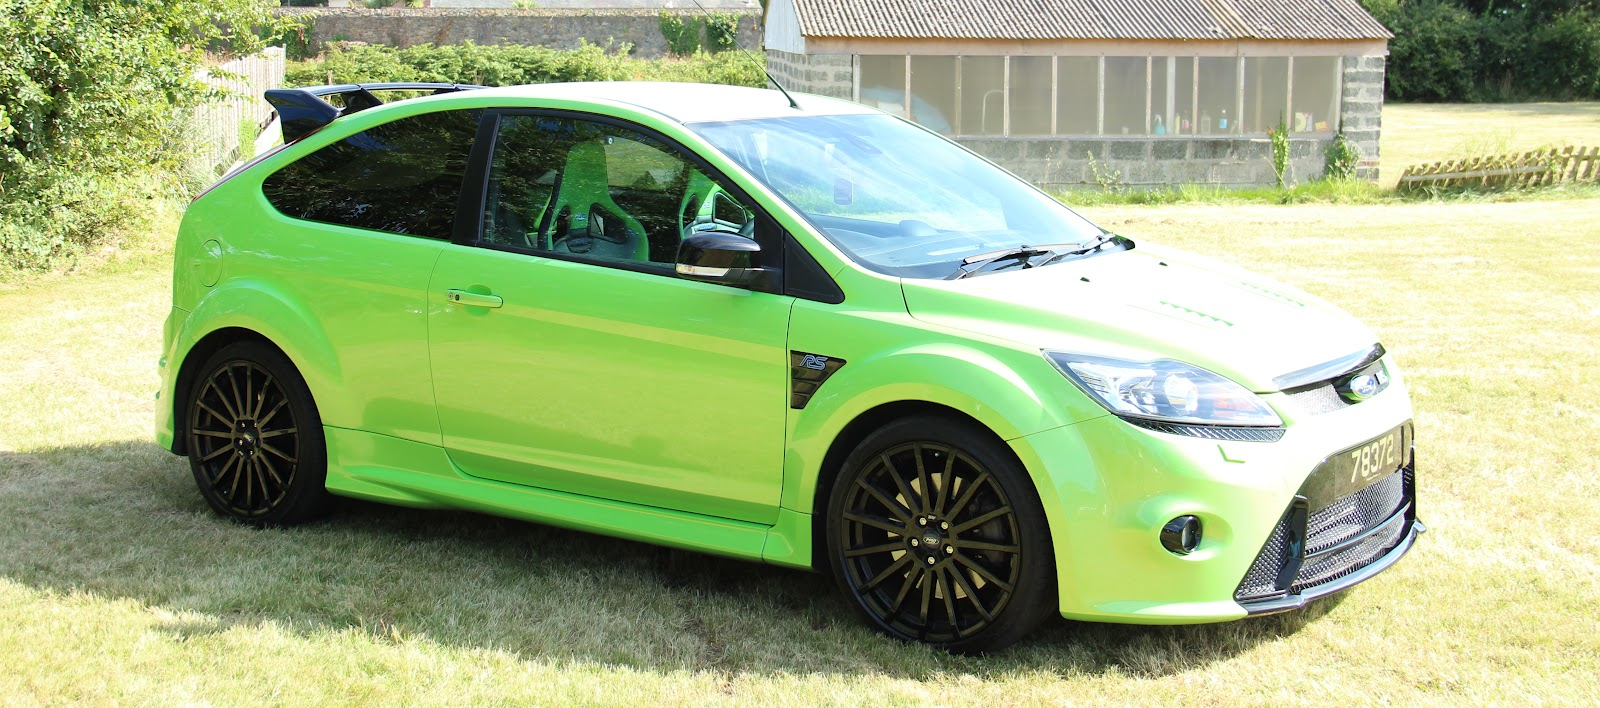 2009 focus rs 2009 ford focus rs for sale. Black Bedroom Furniture Sets. Home Design Ideas